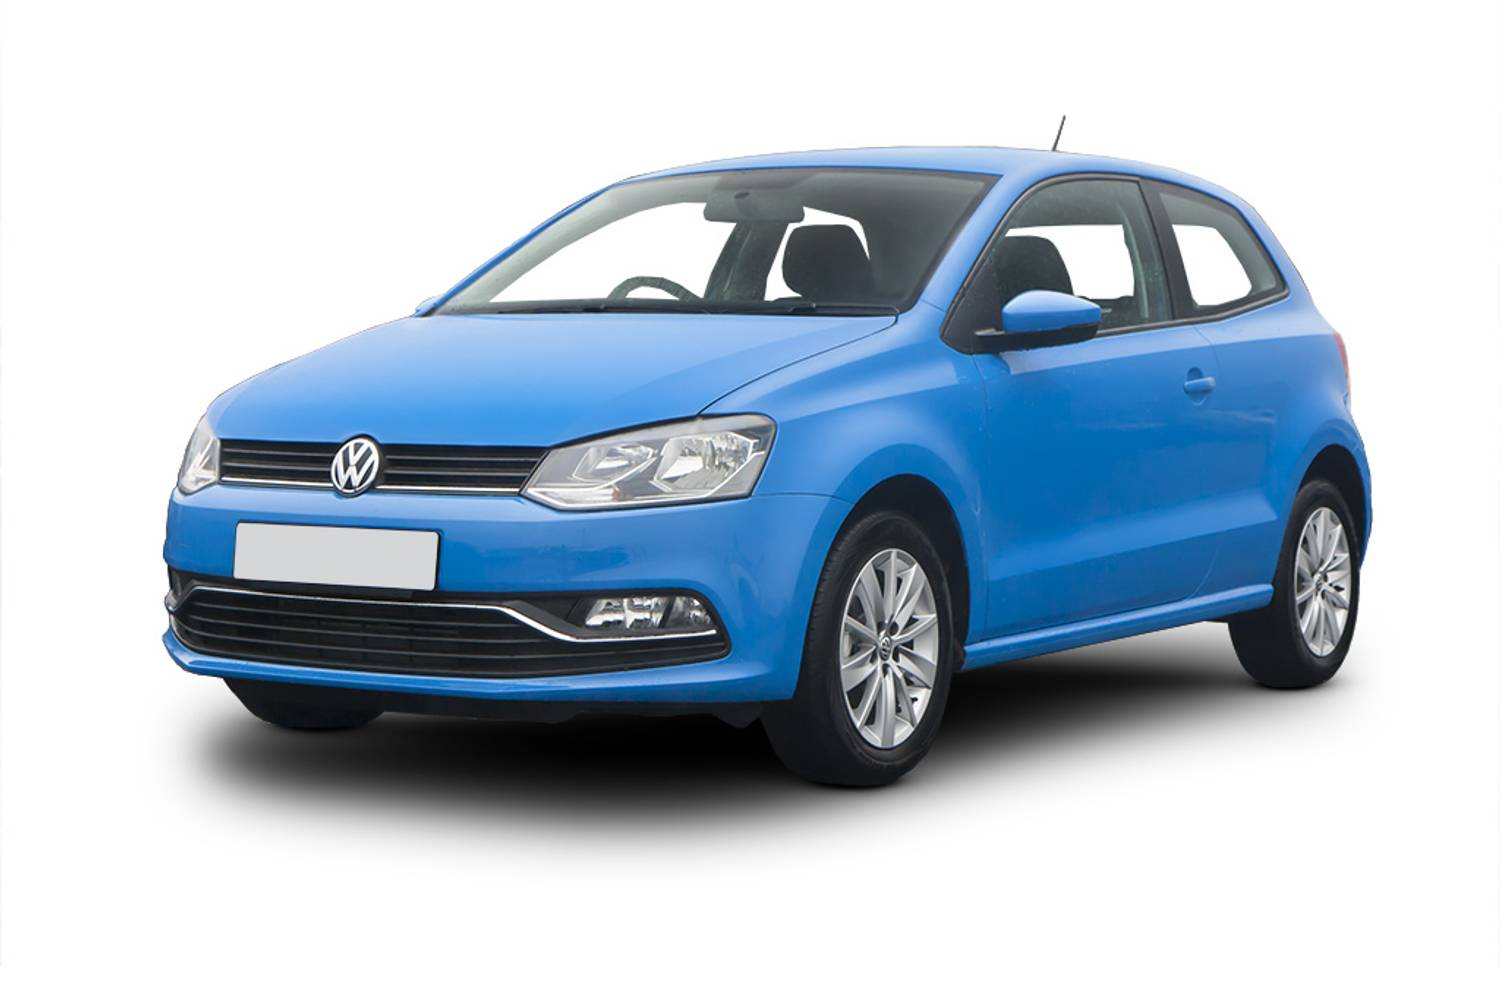 new volkswagen polo hatchback 1 2 tsi match edition 3 door. Black Bedroom Furniture Sets. Home Design Ideas